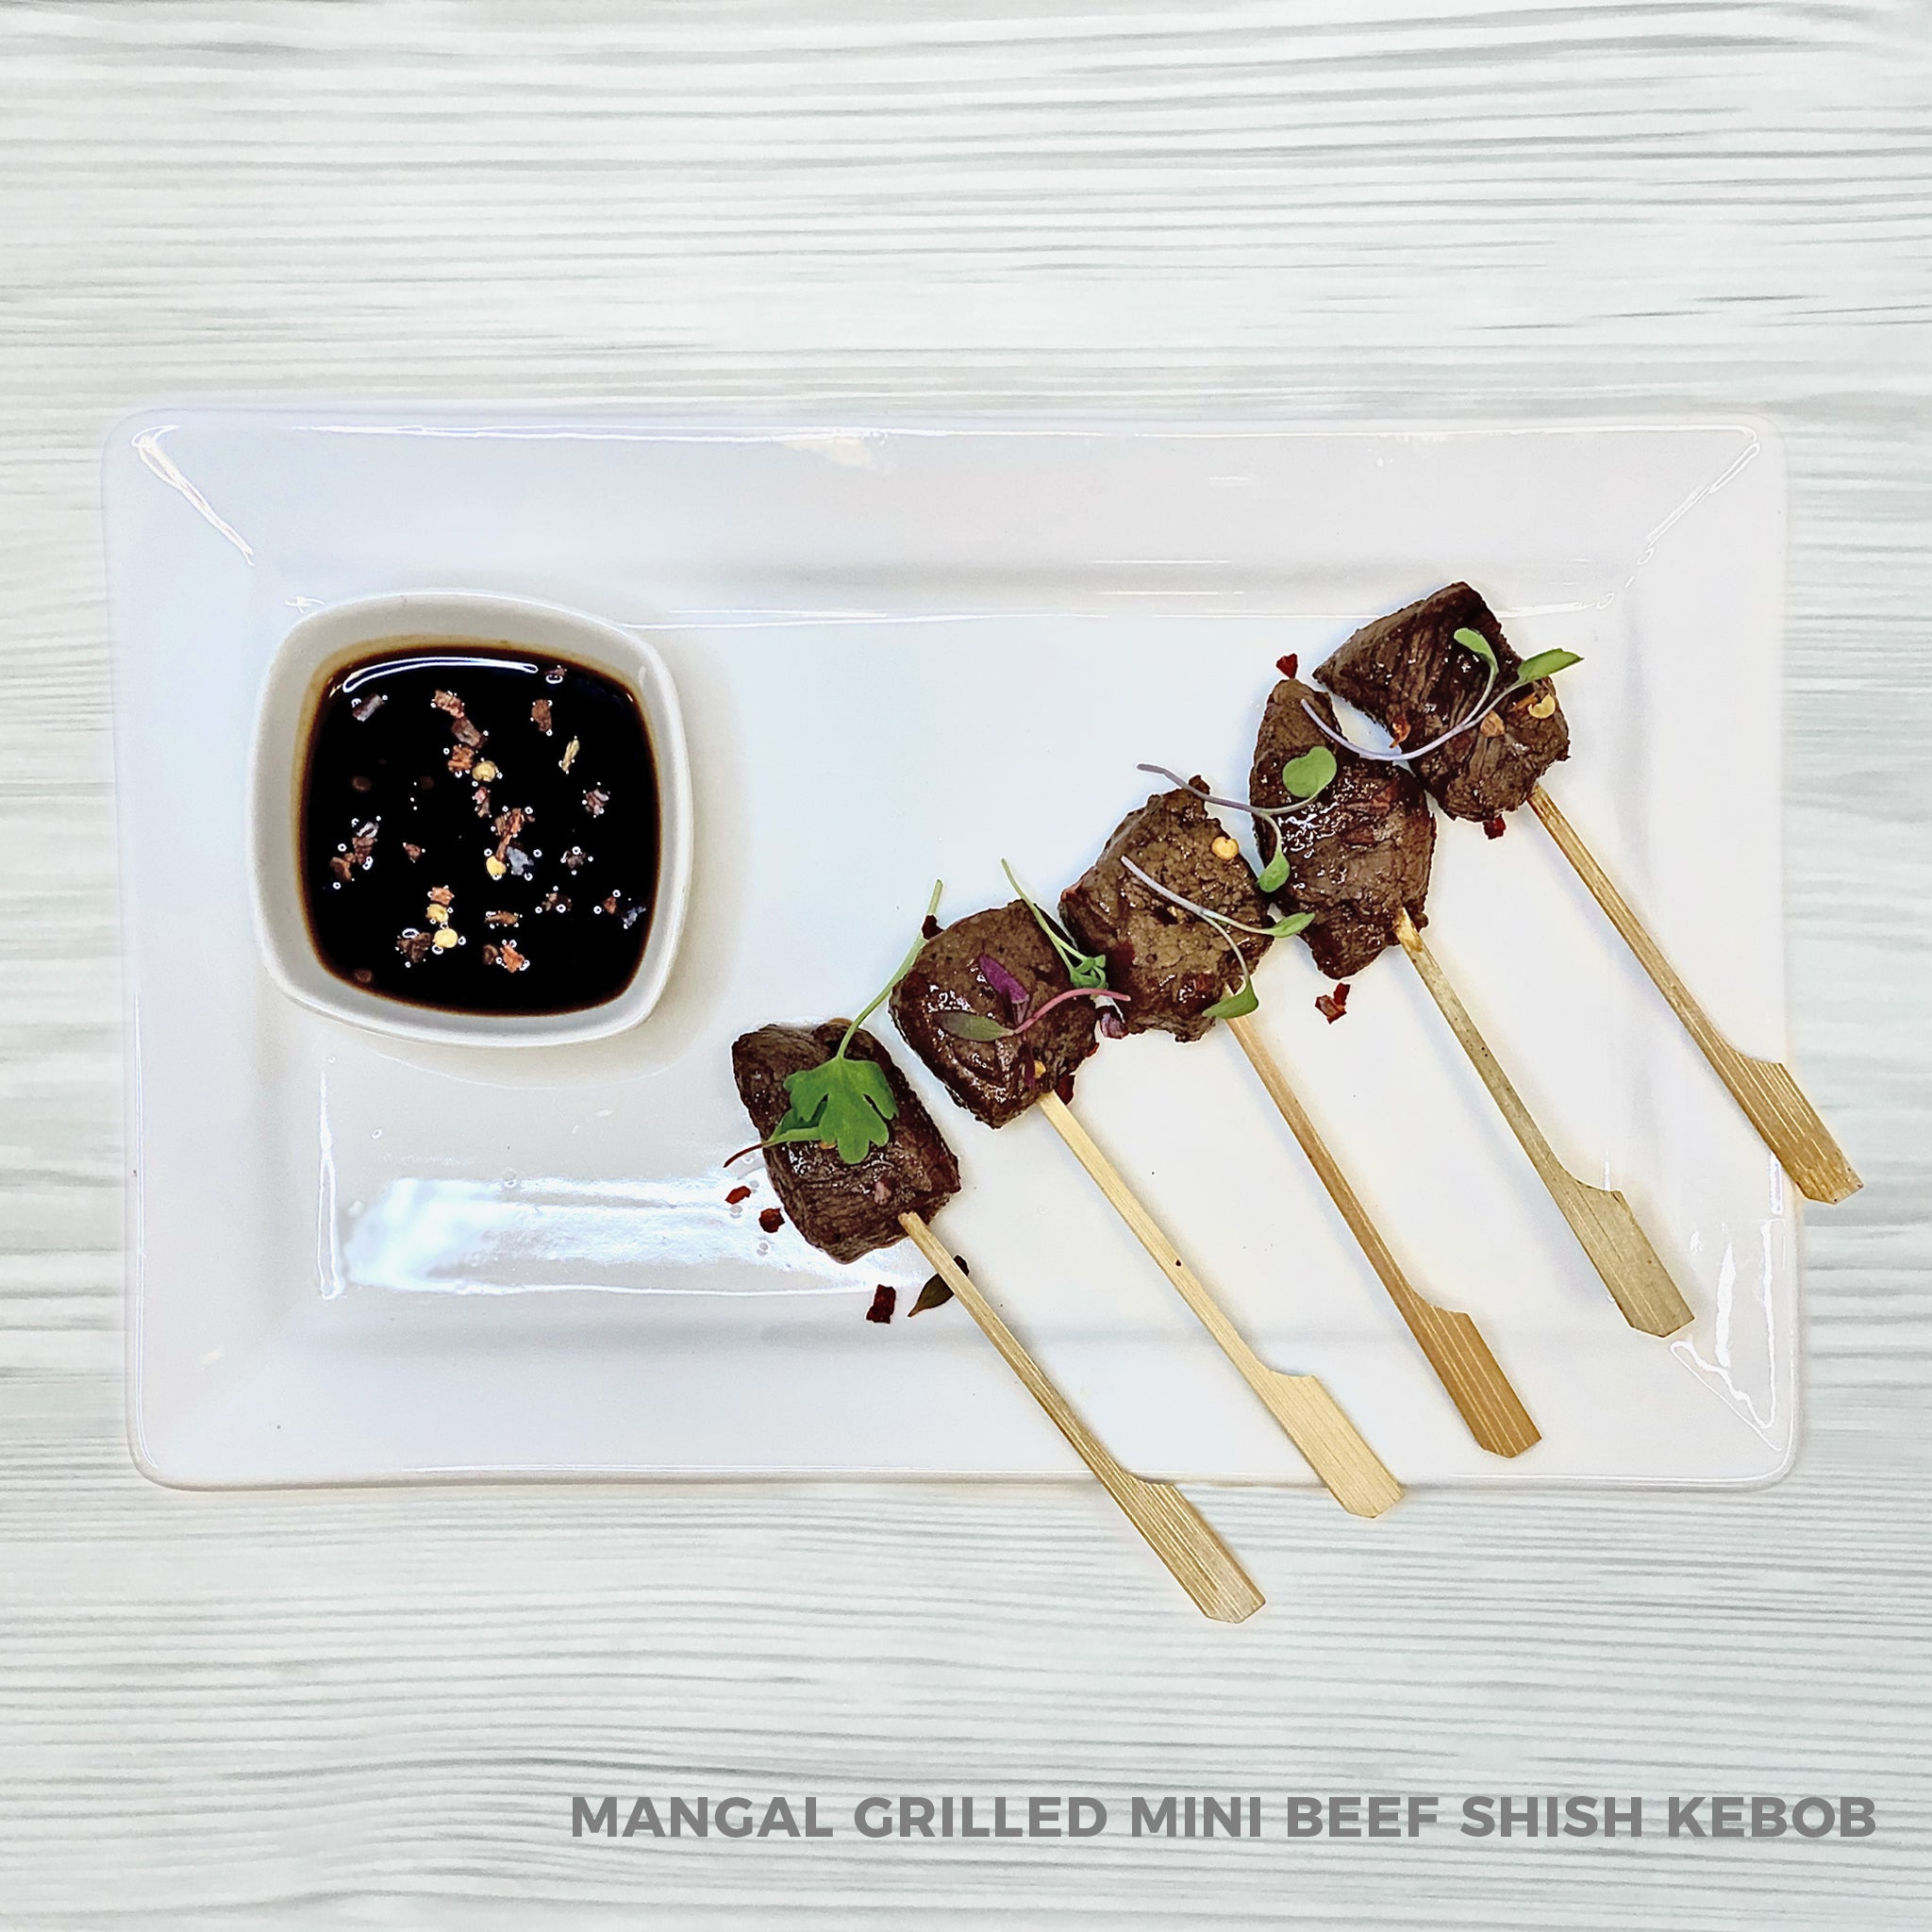 Mangal Grilled Mini Beef Shish Kebob